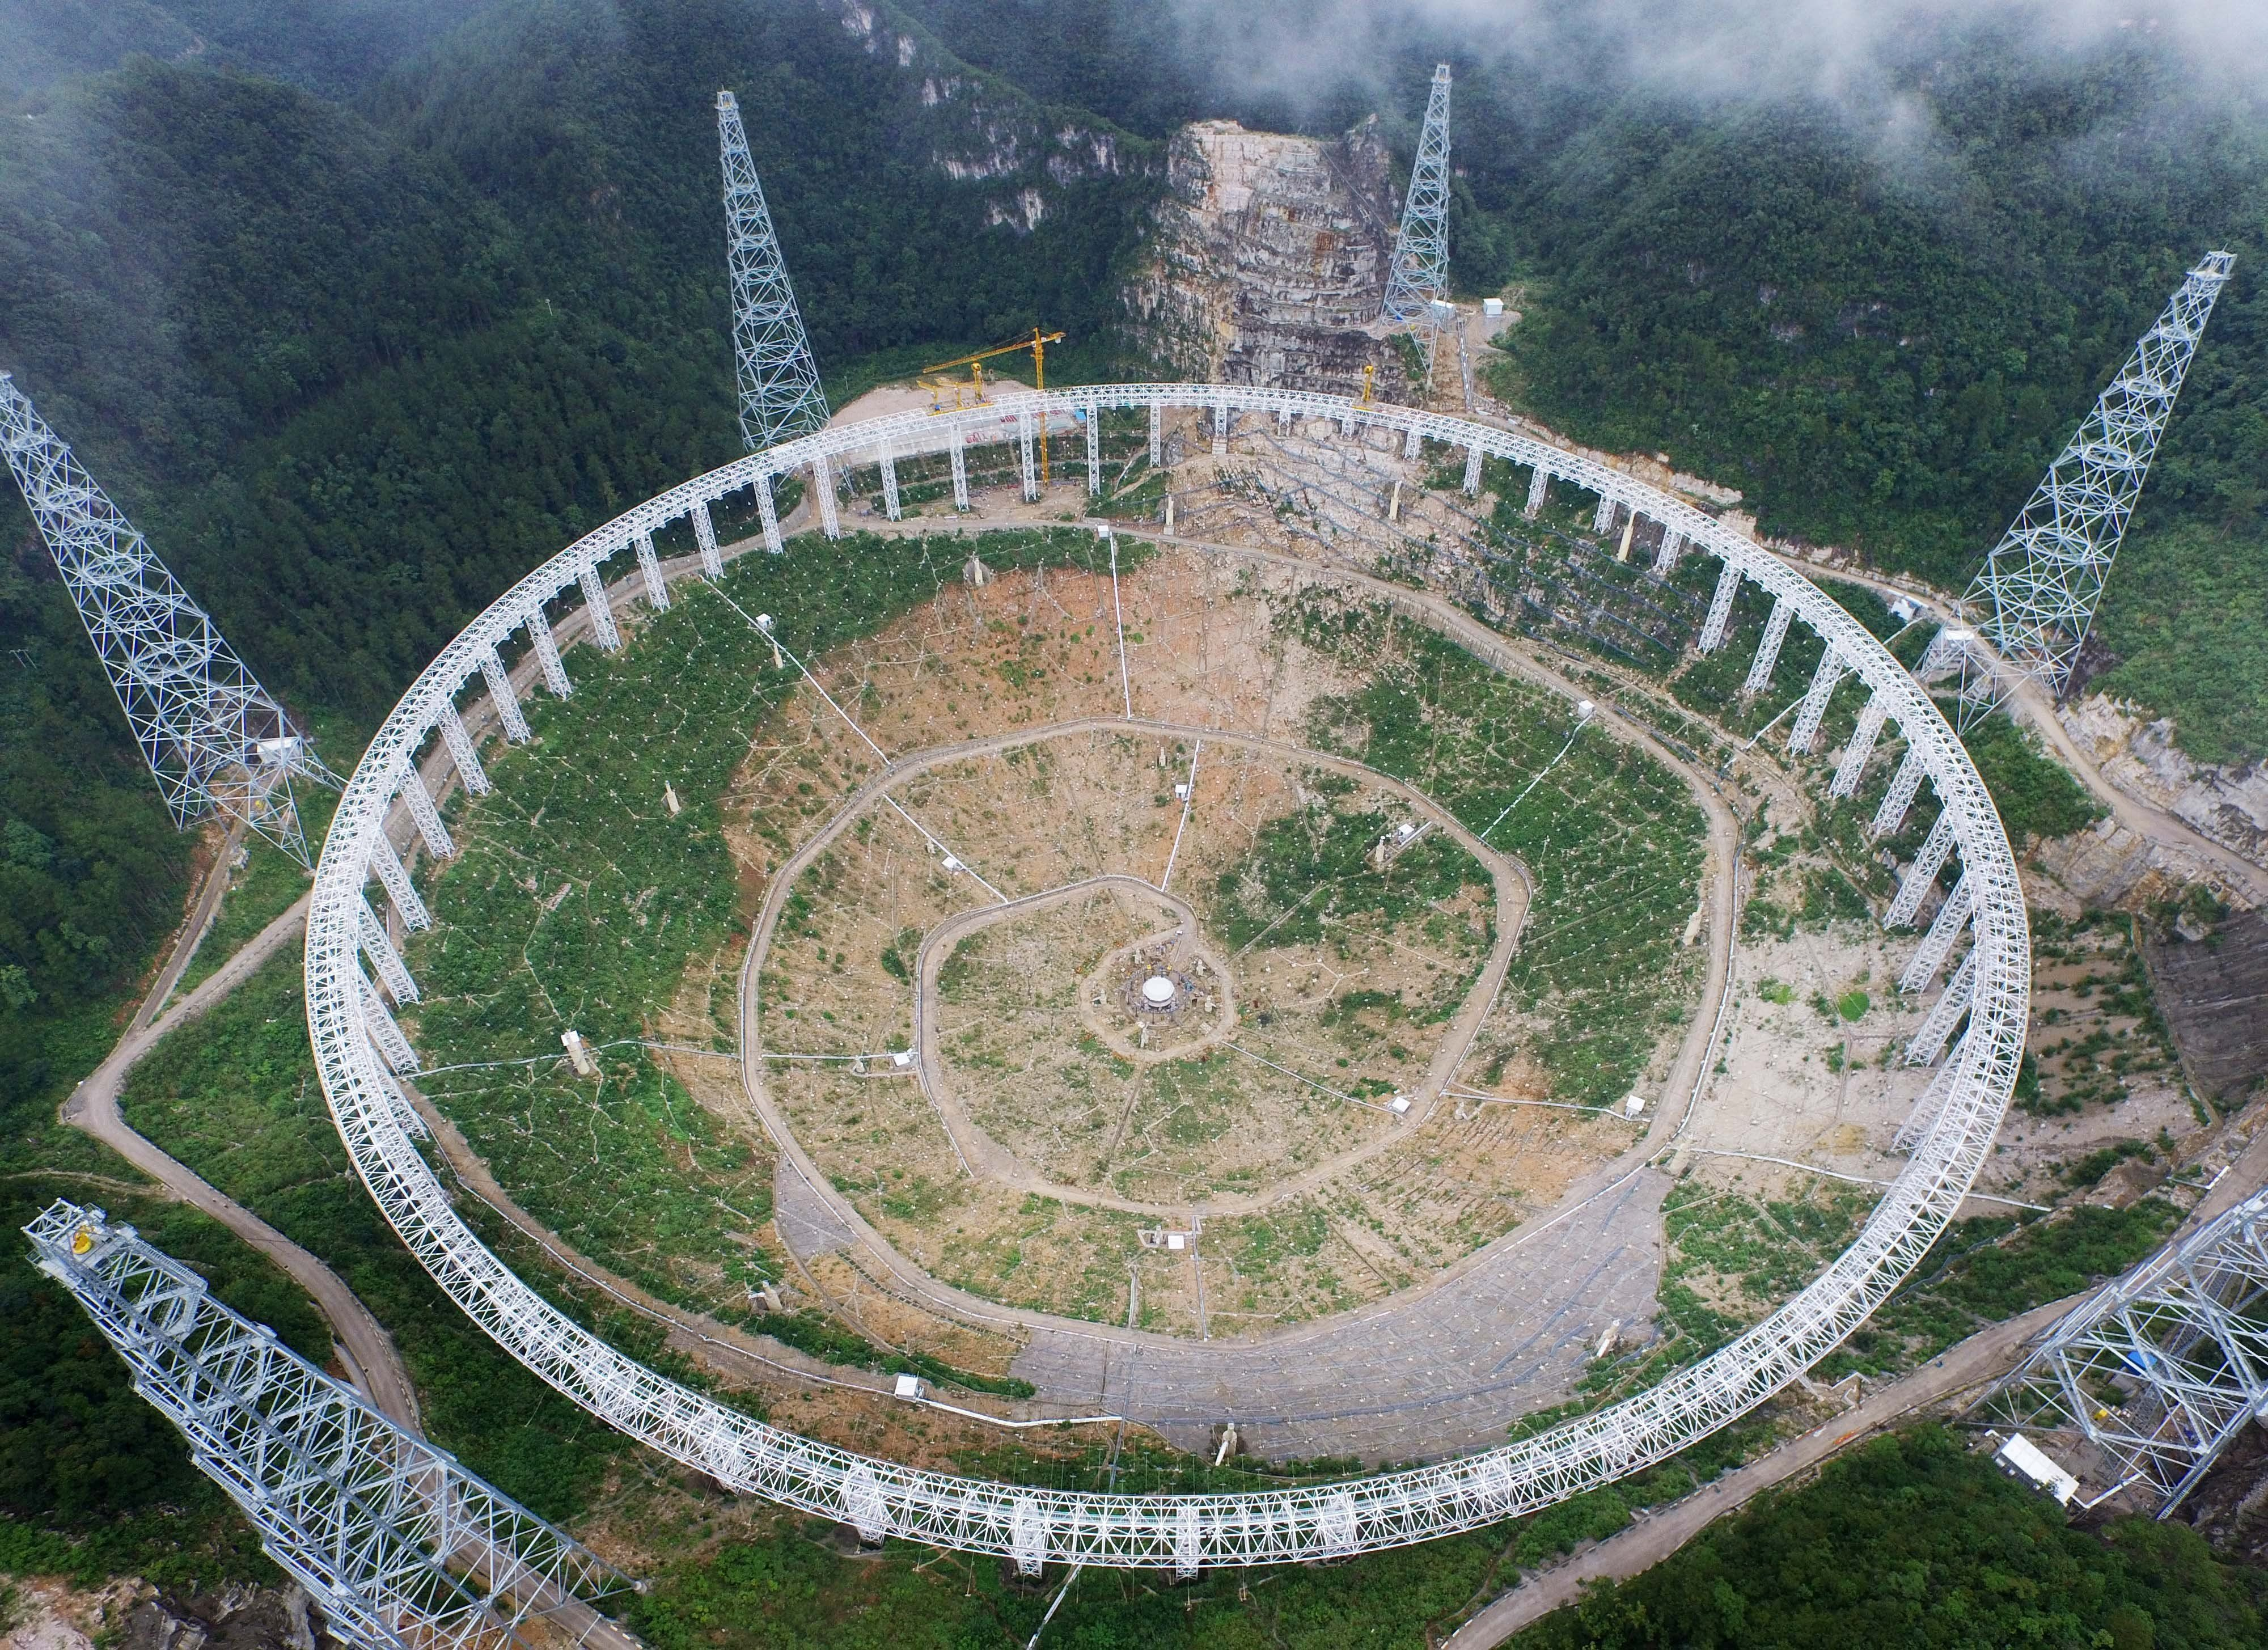 Chinese authorities are resettling over 9,000 people to clear the way for a massive radio telescope meant to search for